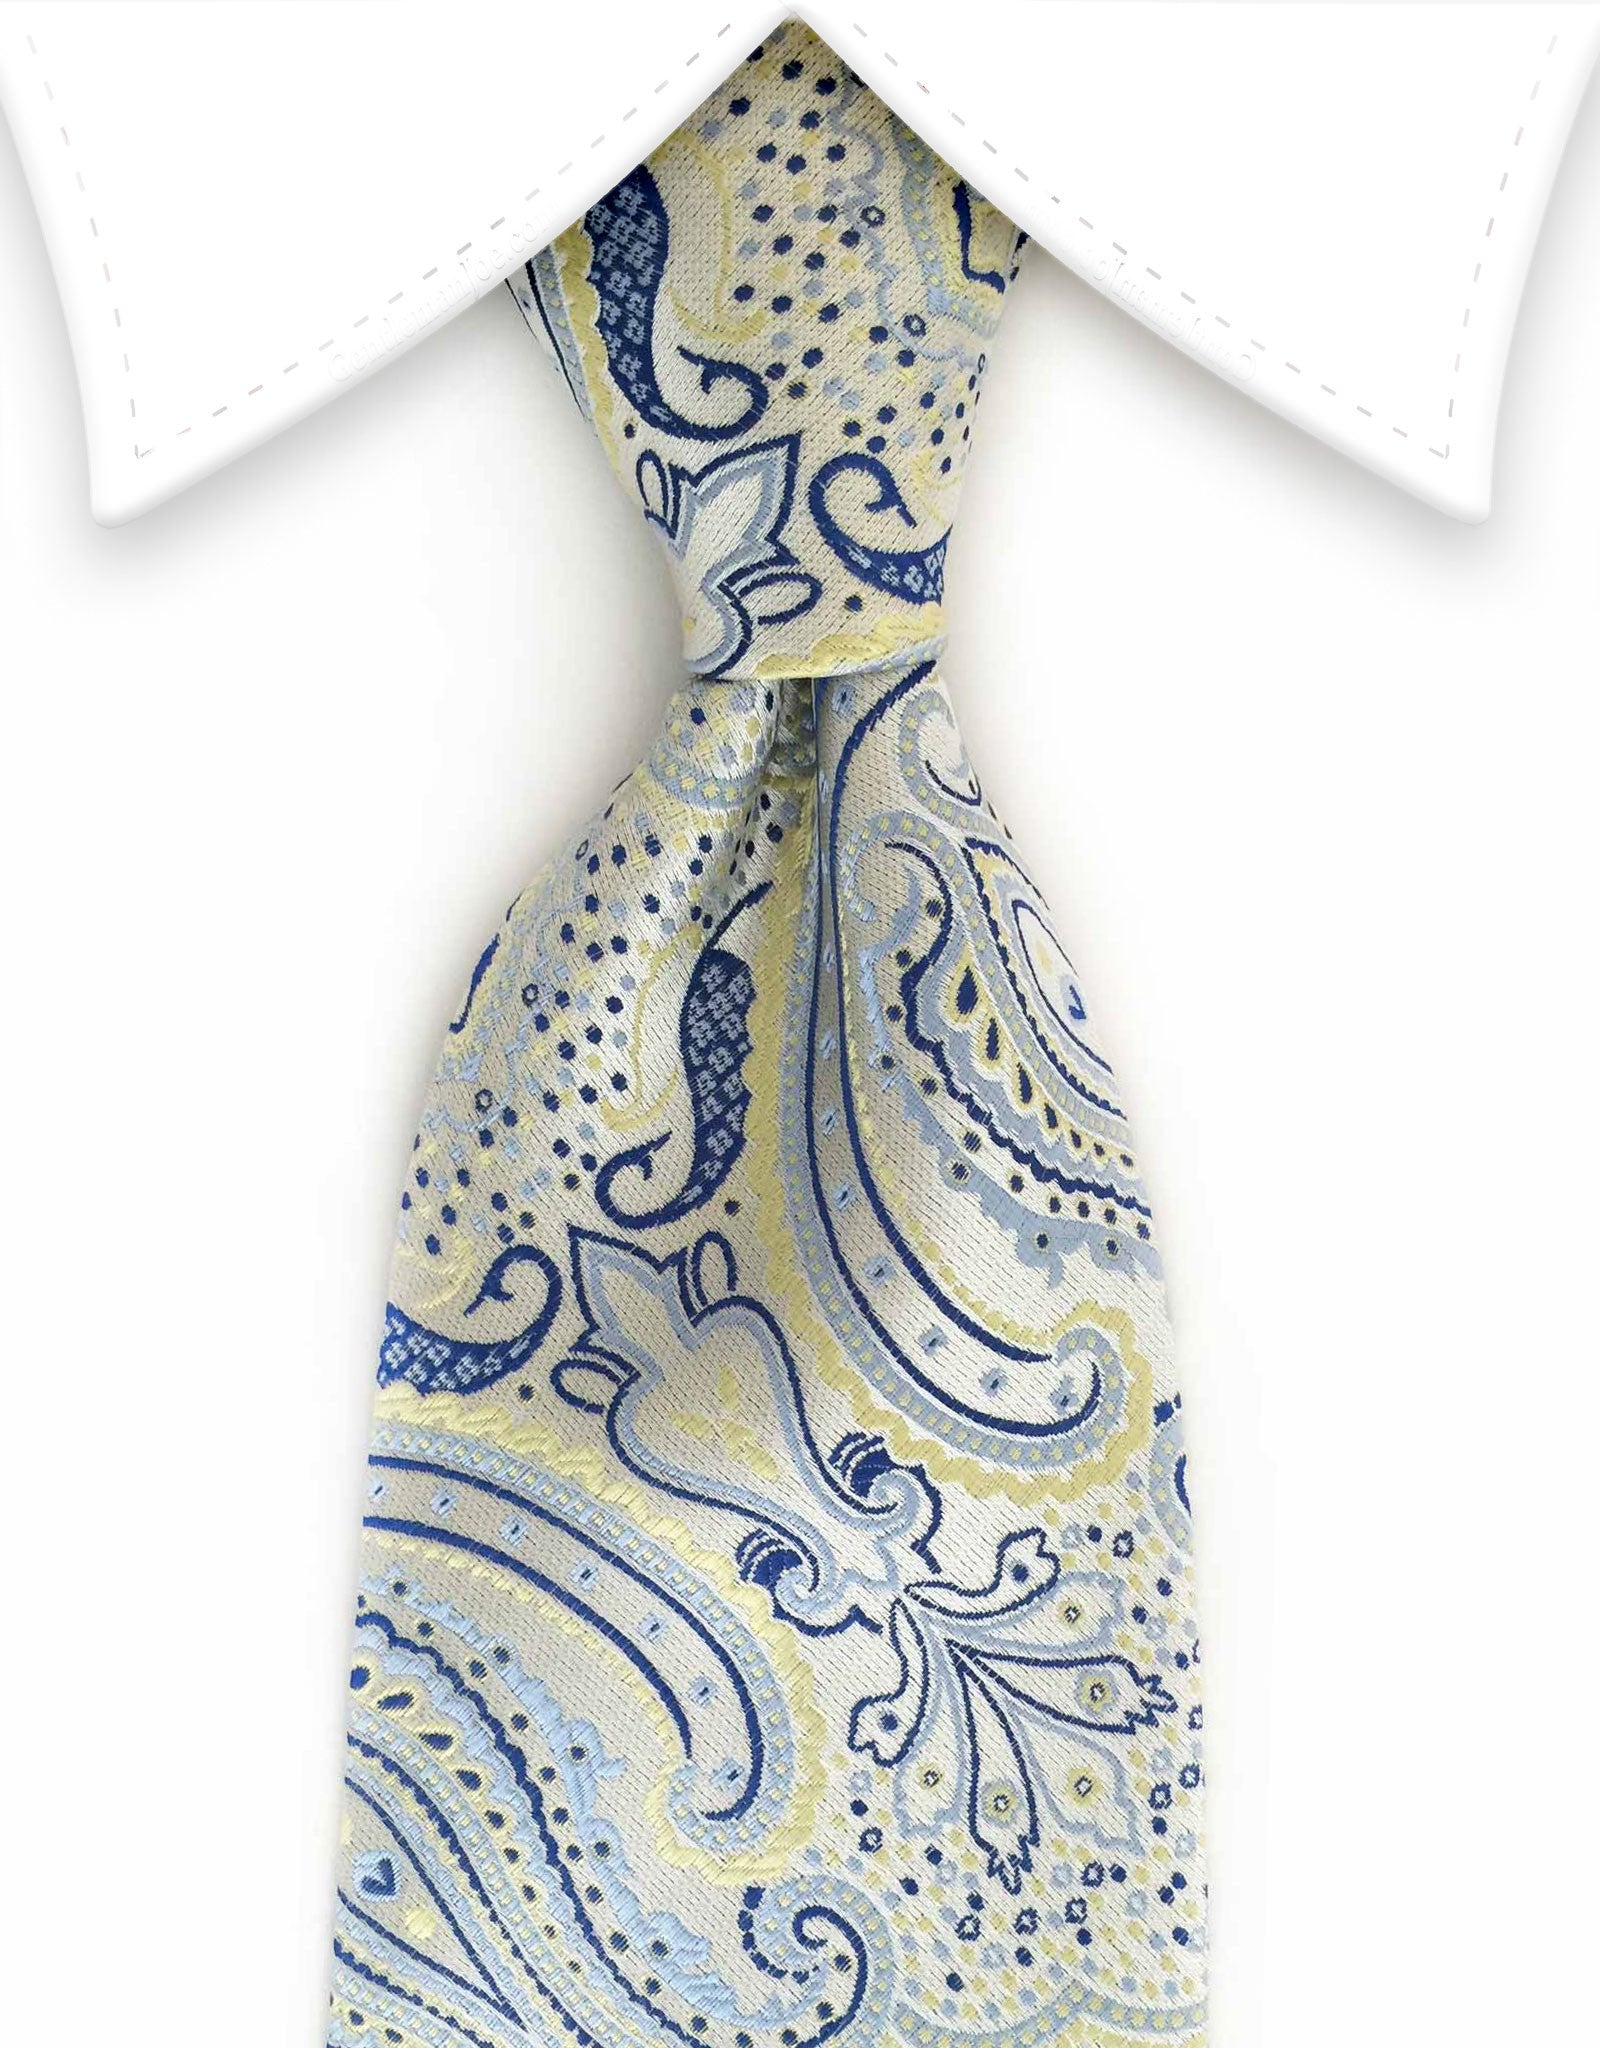 pearl tie with blue & yellow floral accents